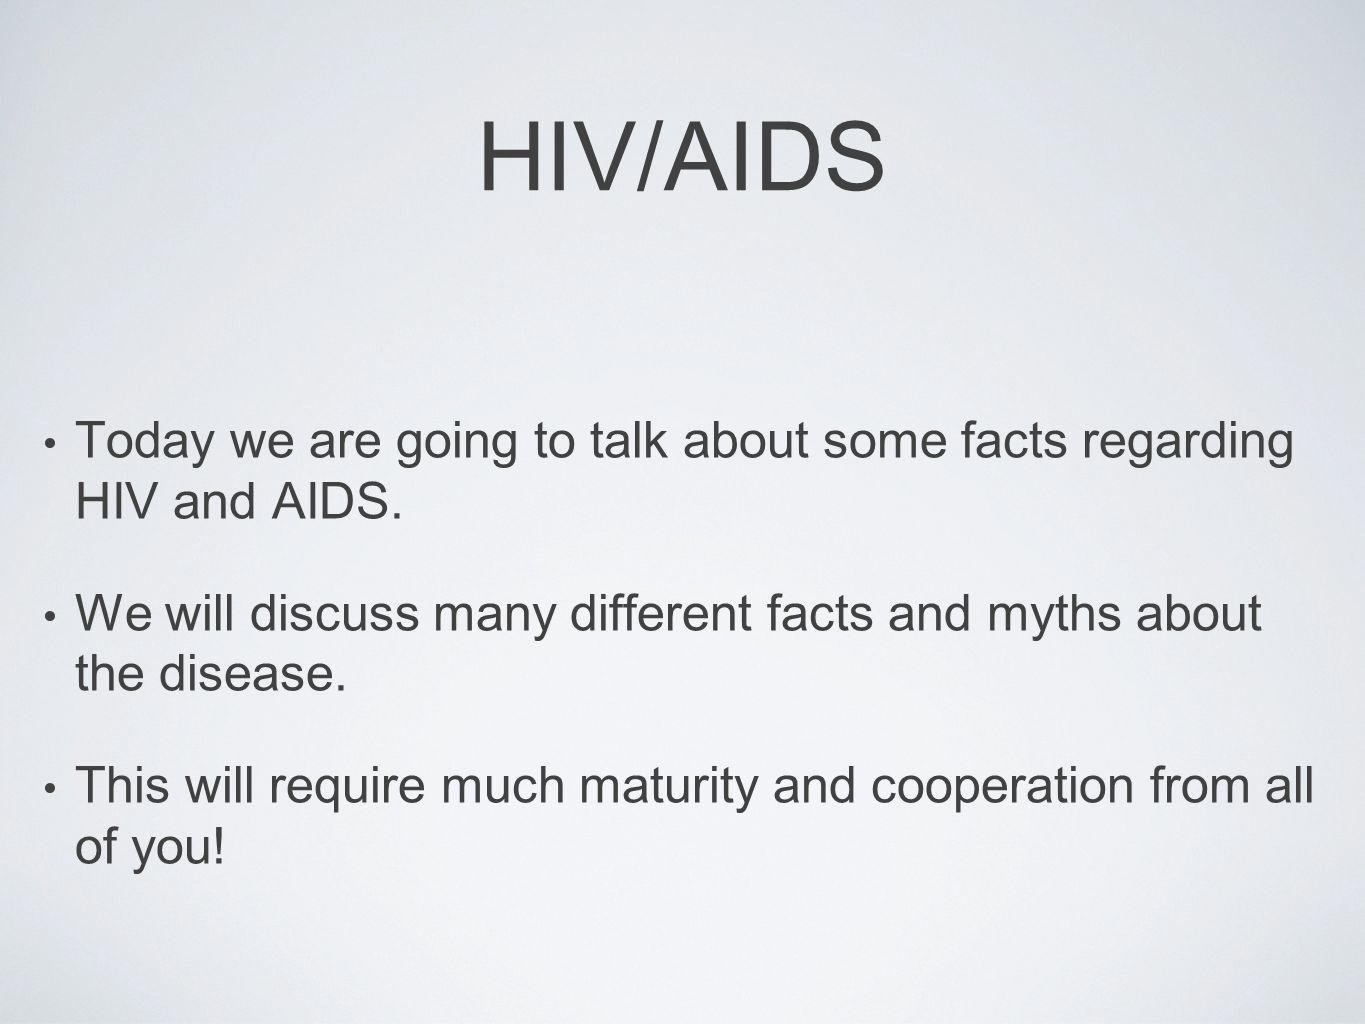 HIV/AIDS Today we are going to talk about some facts regarding HIV and AIDS. We will discuss many different facts and myths about the disease.